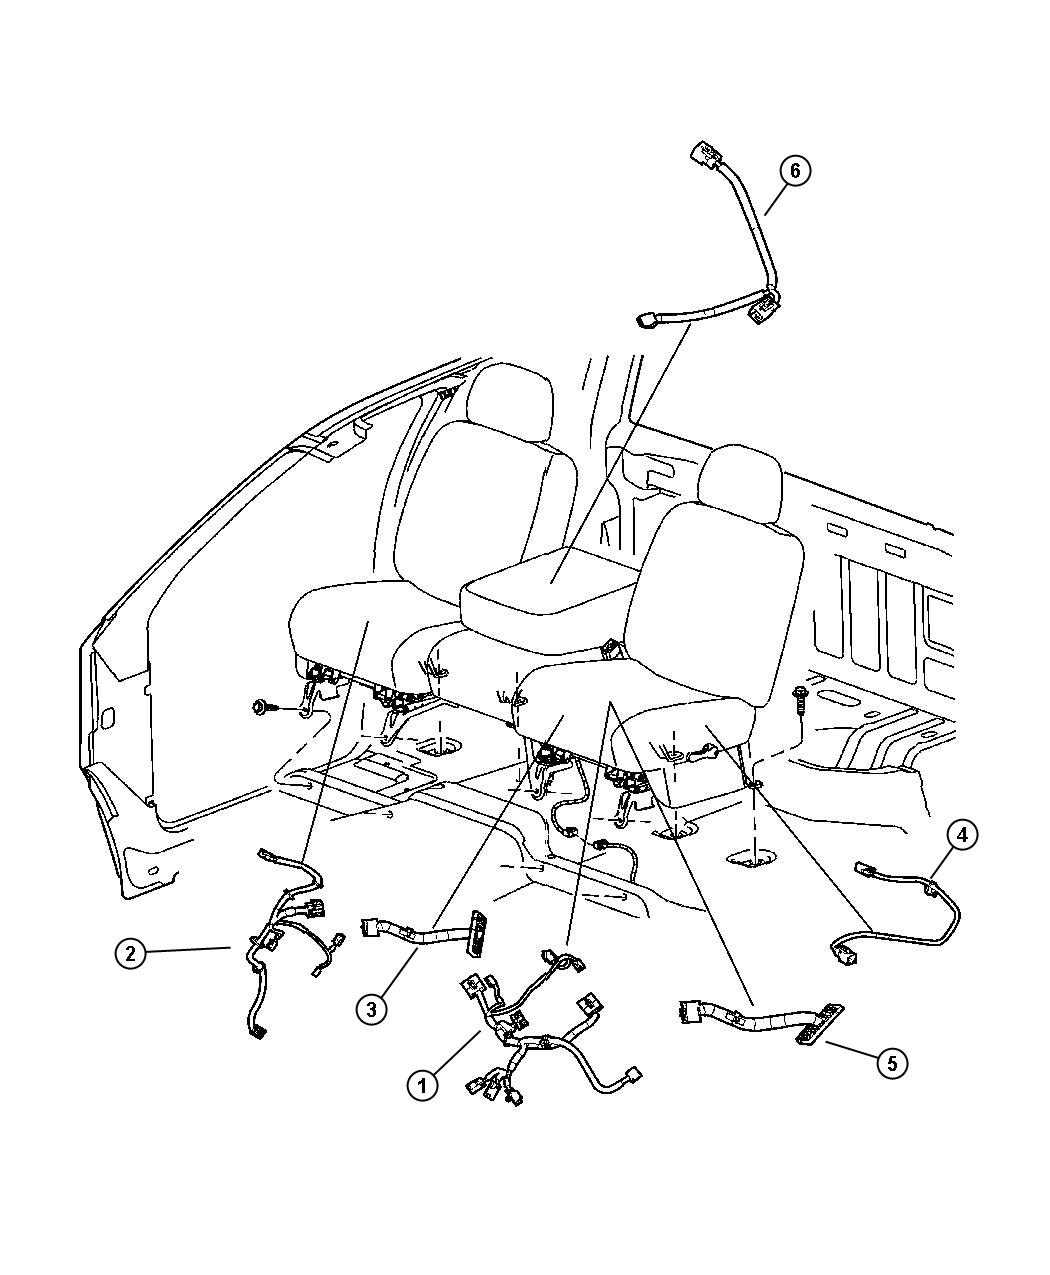 2007 Dodge Ram 3500 PICKUP Wiring Seats